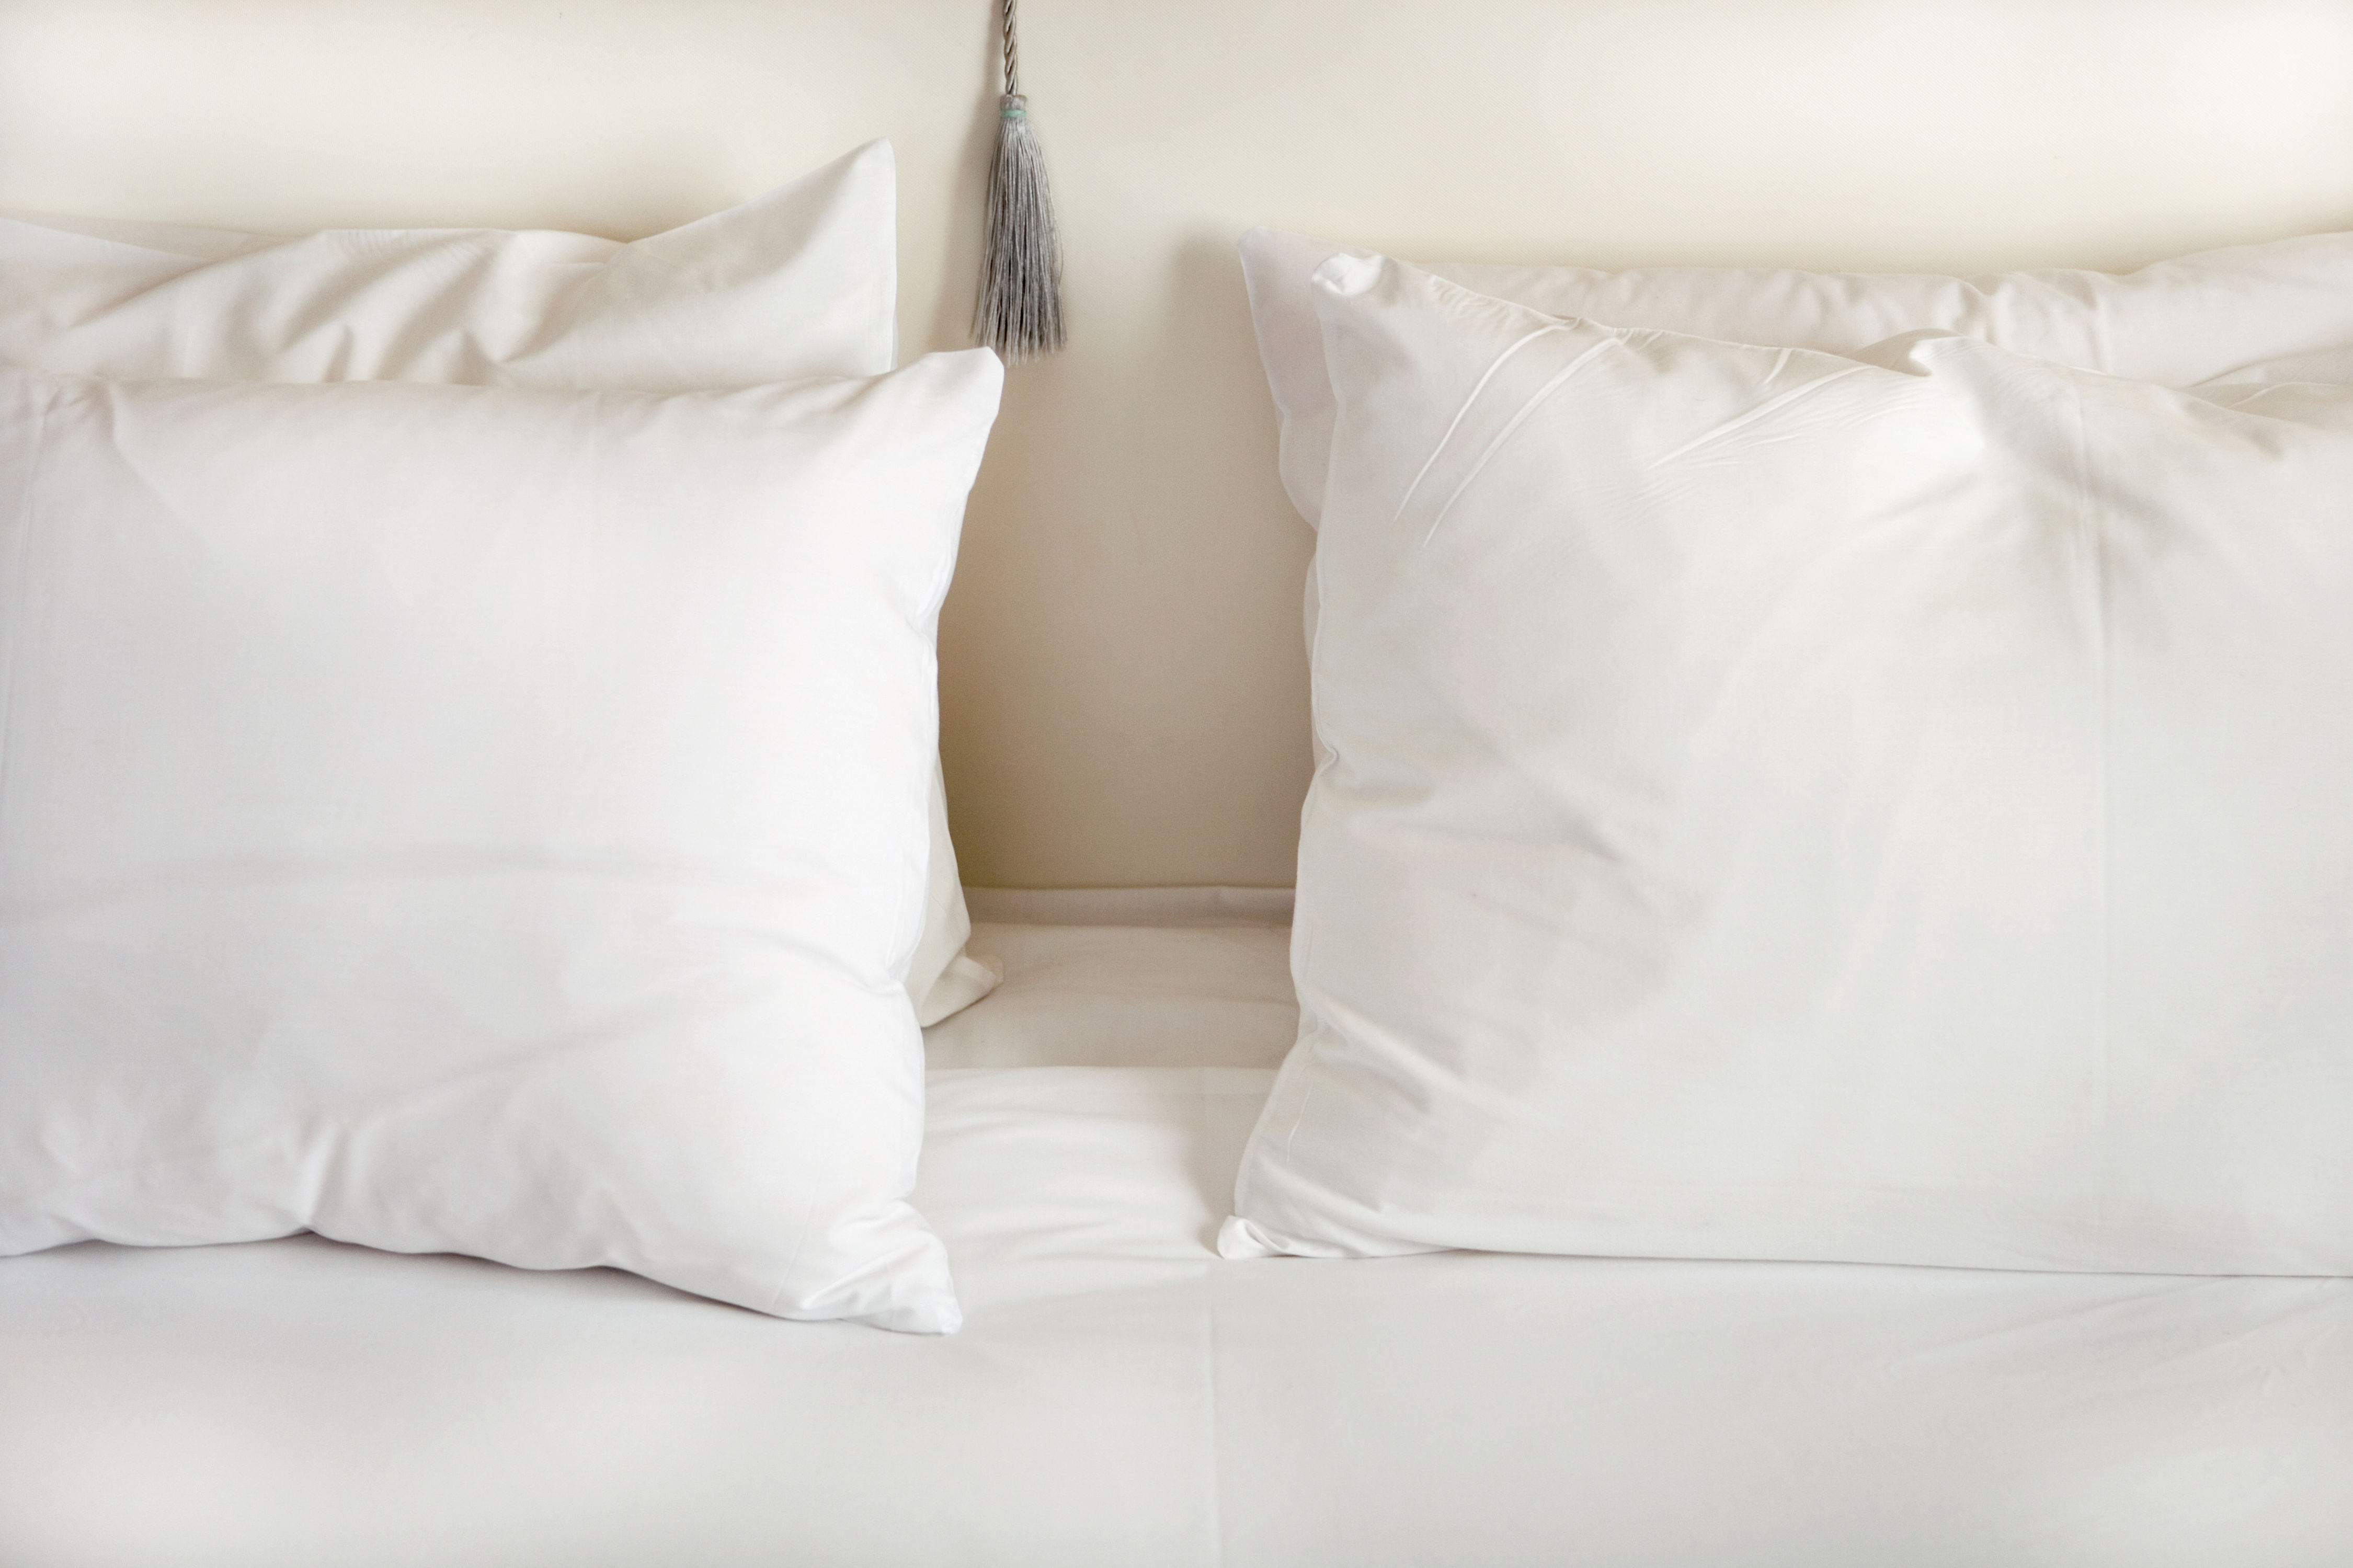 This Popular Pillow Company Just Got Downgraded